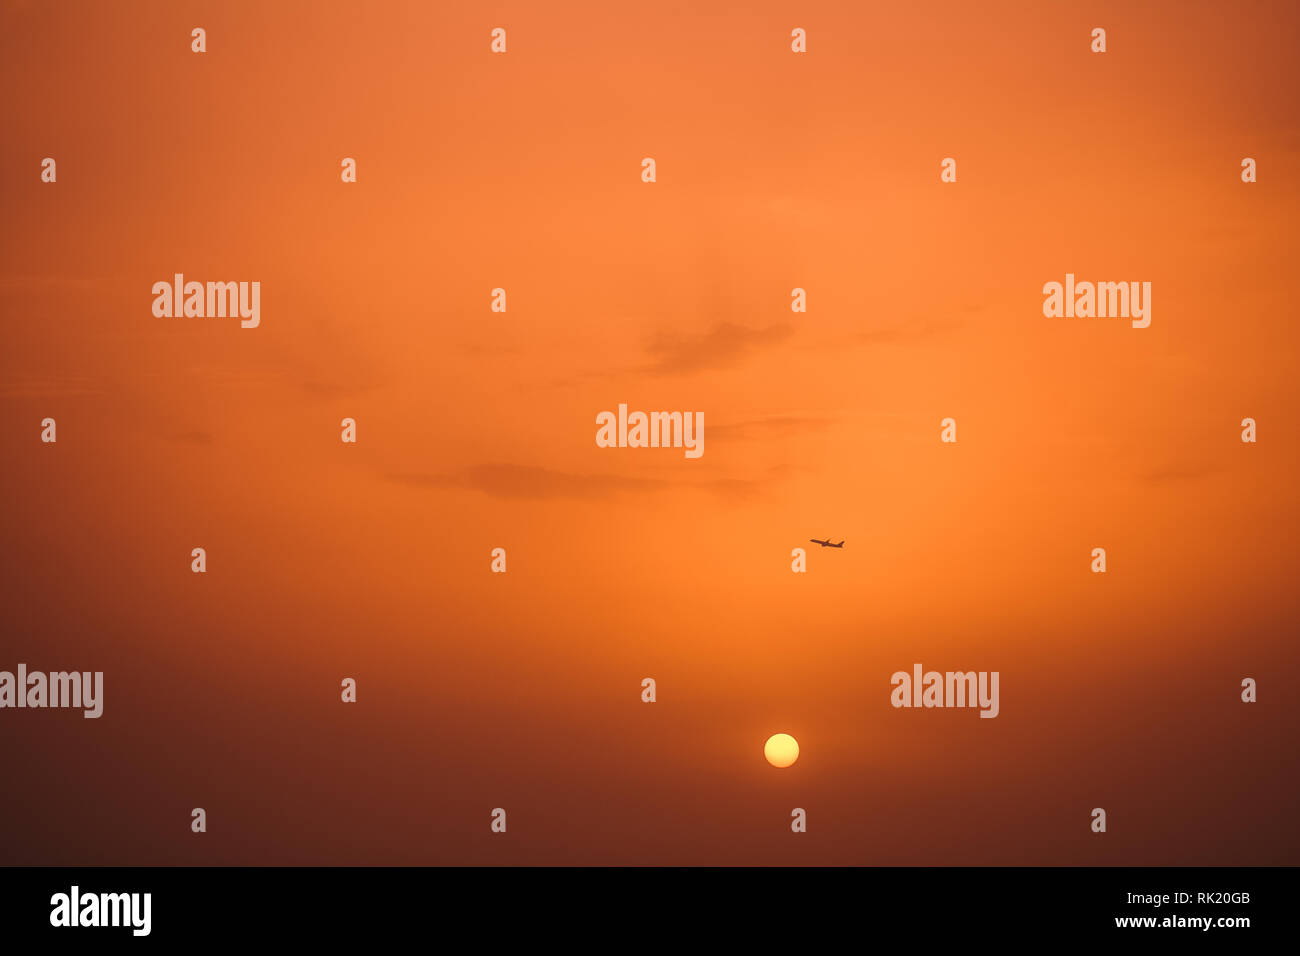 Dark silhouette of airplane in distance in air and sunset sun in background. Plane making take off from airport in Turkey. Horizontal color photograph - Stock Image